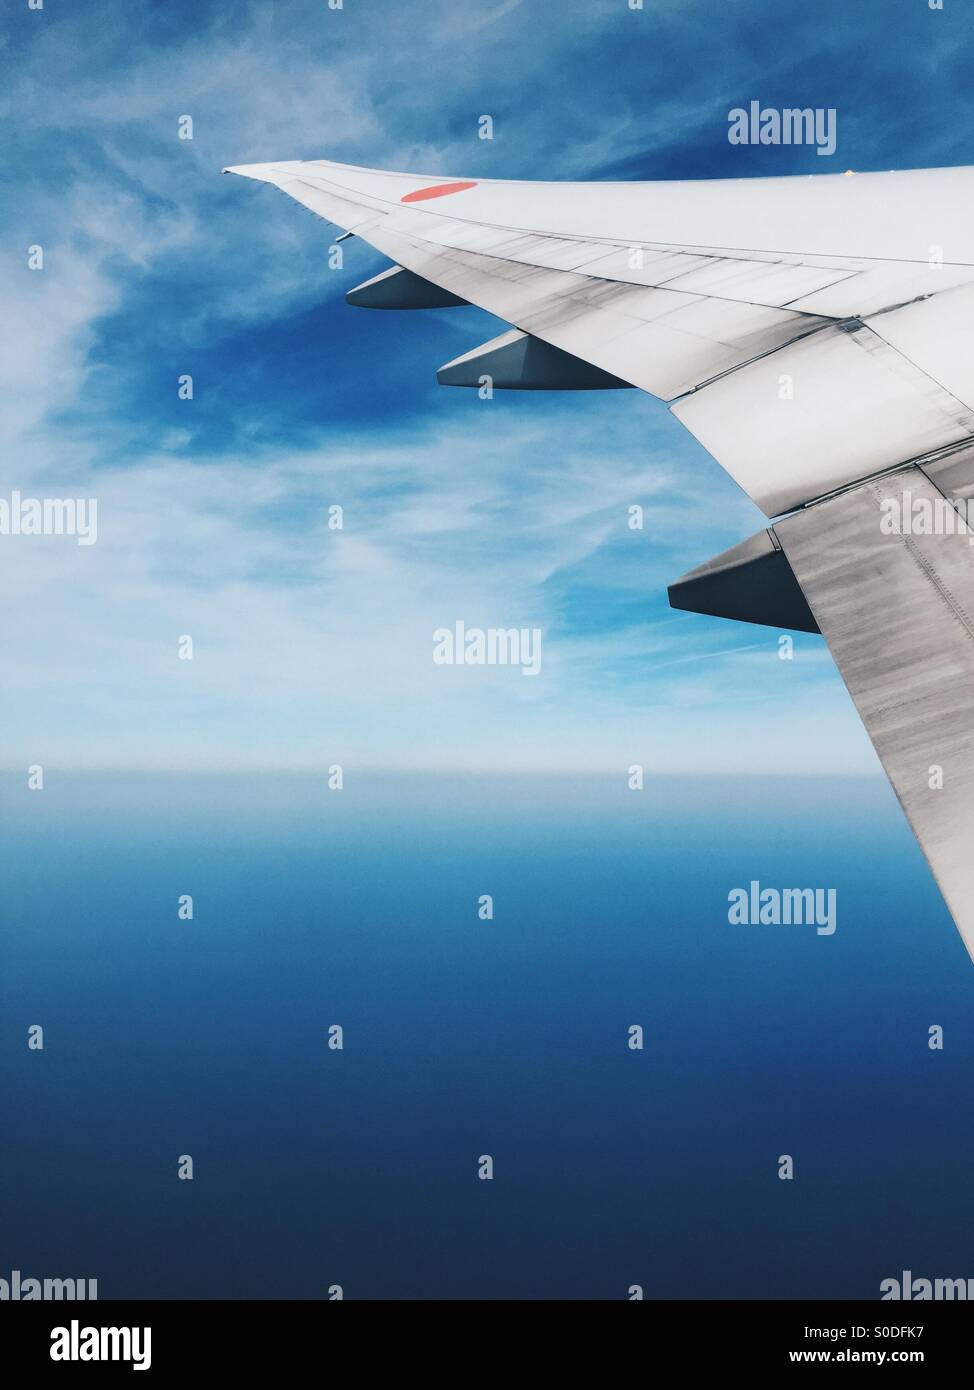 fenster mit blick auf flugzeugfl gel von all nippon airways boeing 777 300 mit blauem himmel und. Black Bedroom Furniture Sets. Home Design Ideas